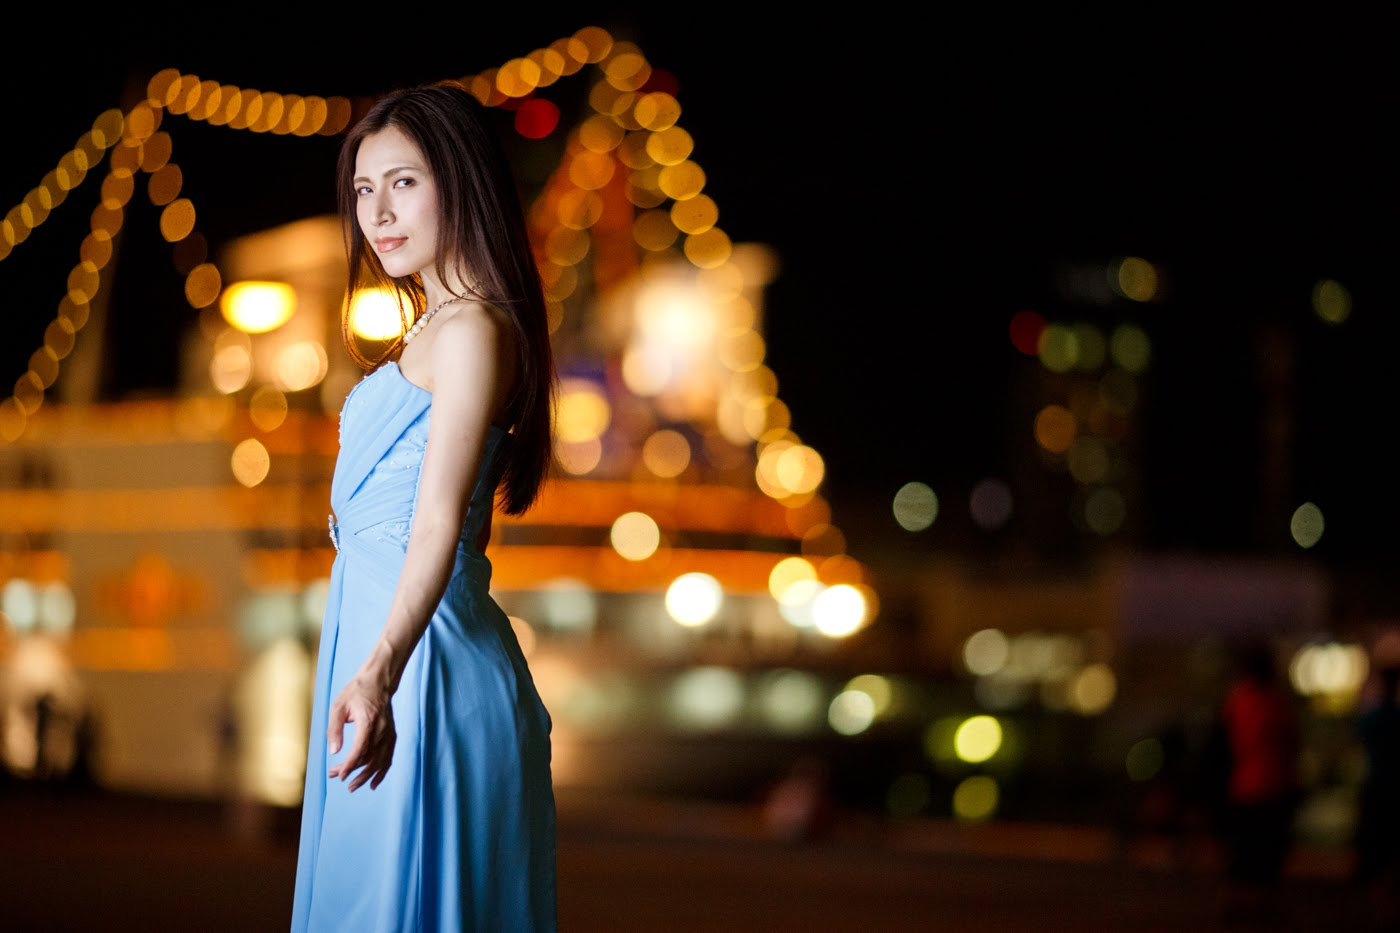 Shooting at night – how to make alluring photography in the evening